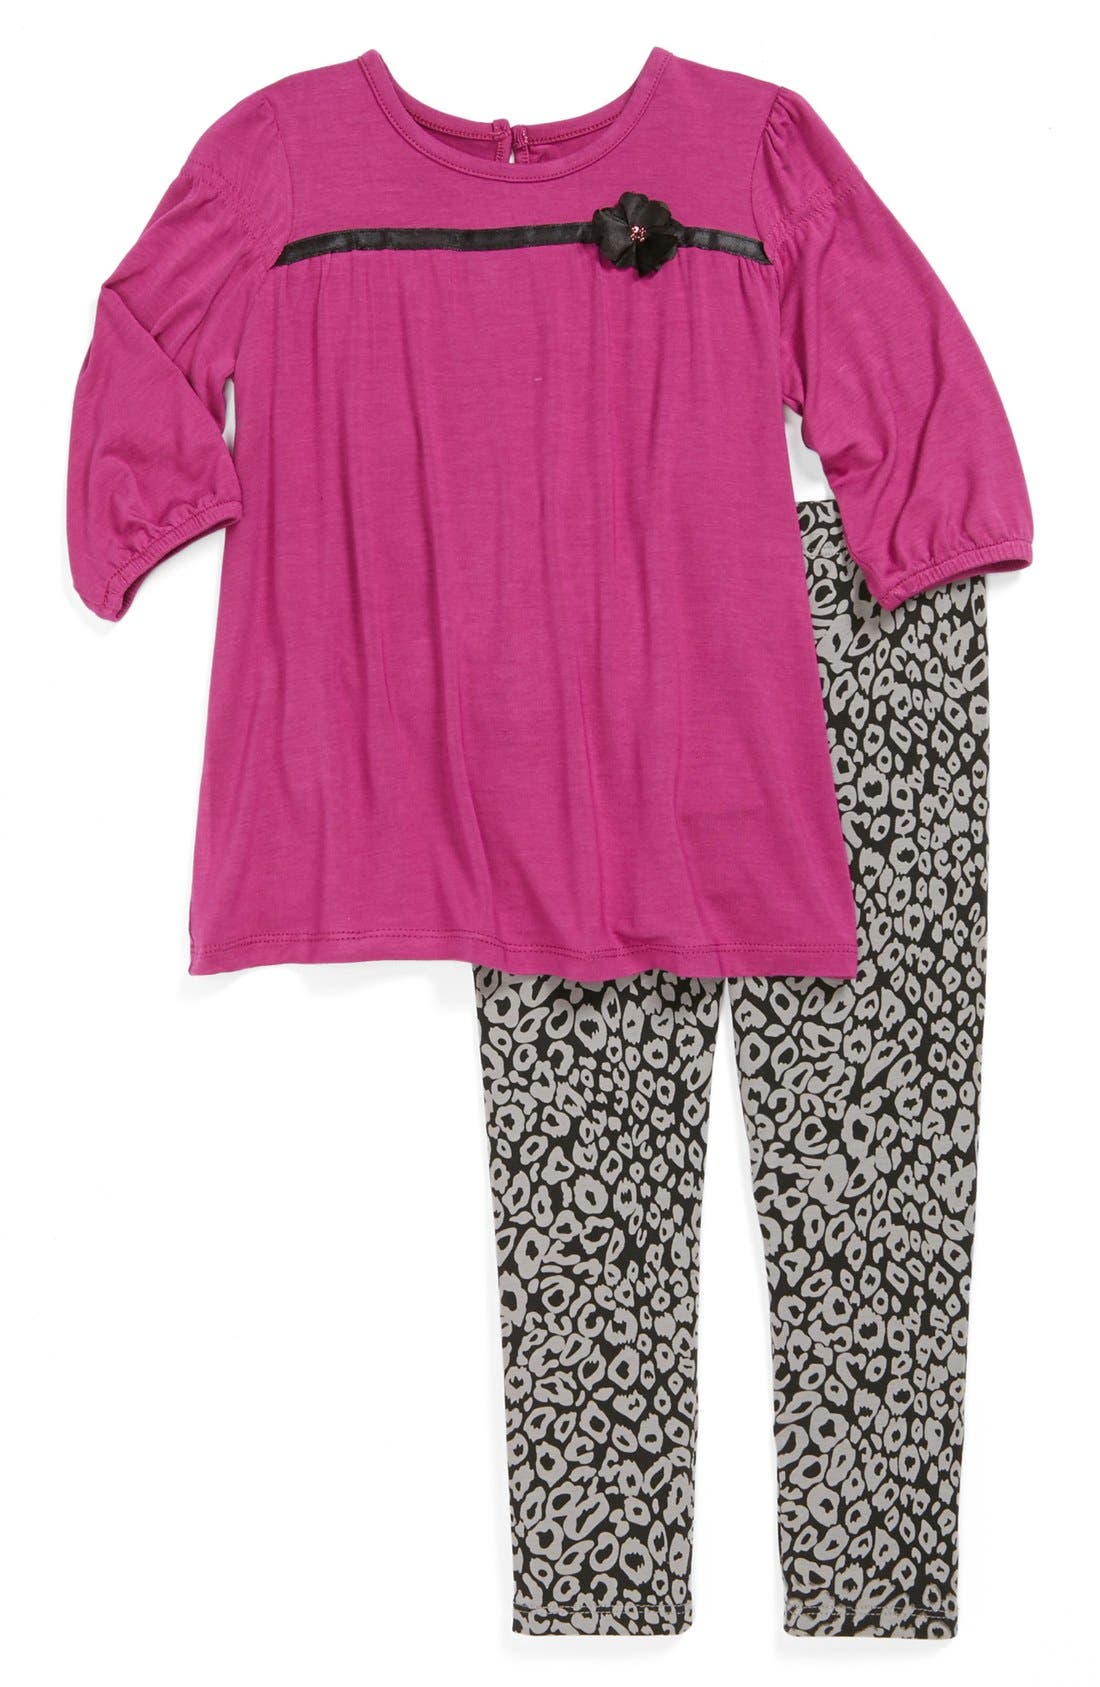 Alternate Image 1 Selected - Nicole Miller Tunic & Print Leggings (Toddler Girls)